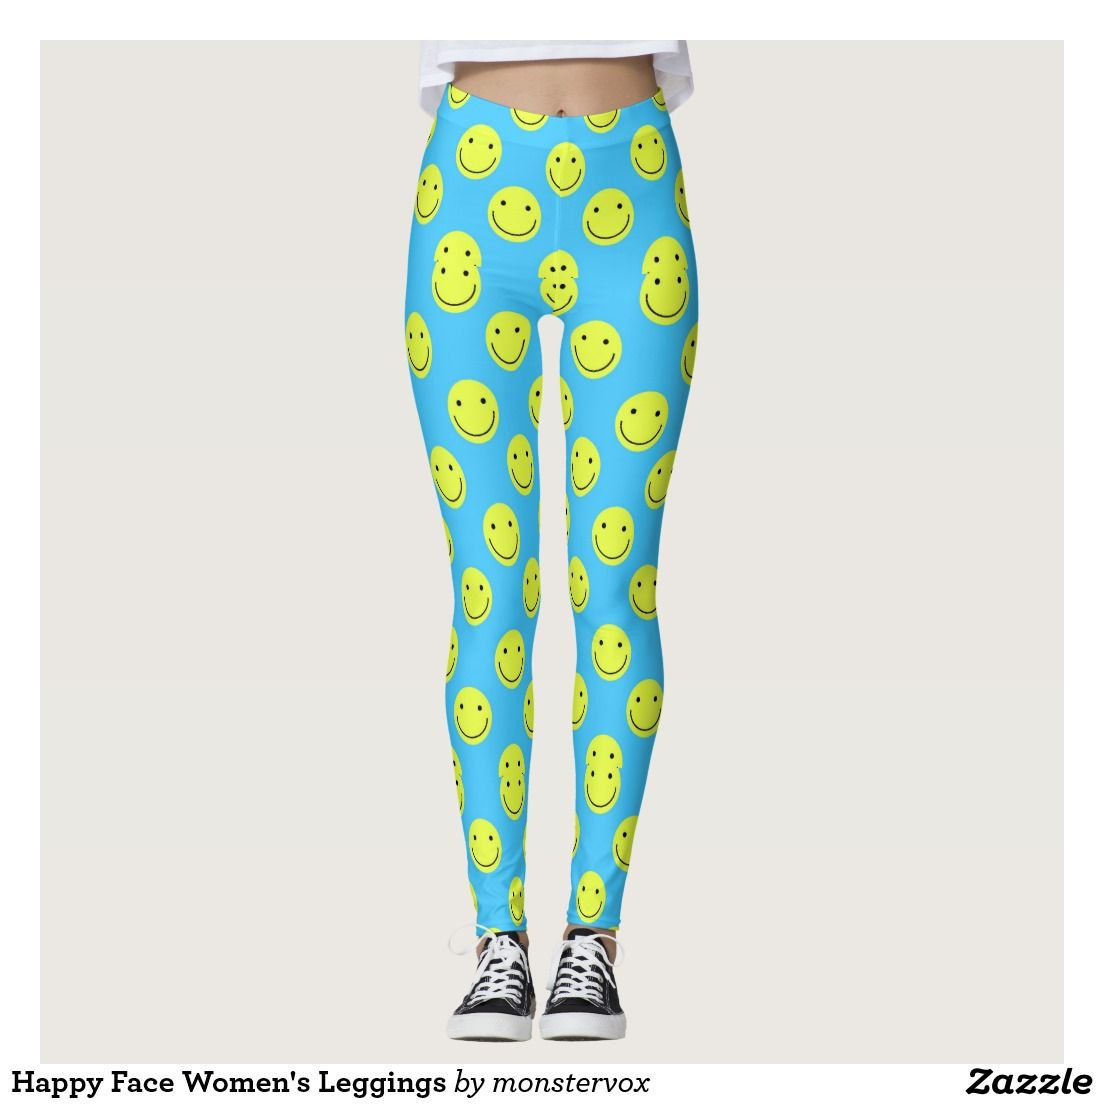 Happy Face Women S Leggings Leggings Yoga Pants Activewear Sports Sportswear Athletic Athleticwear Fashion Emoji Patterns Fashion Womens Yoga Leggings